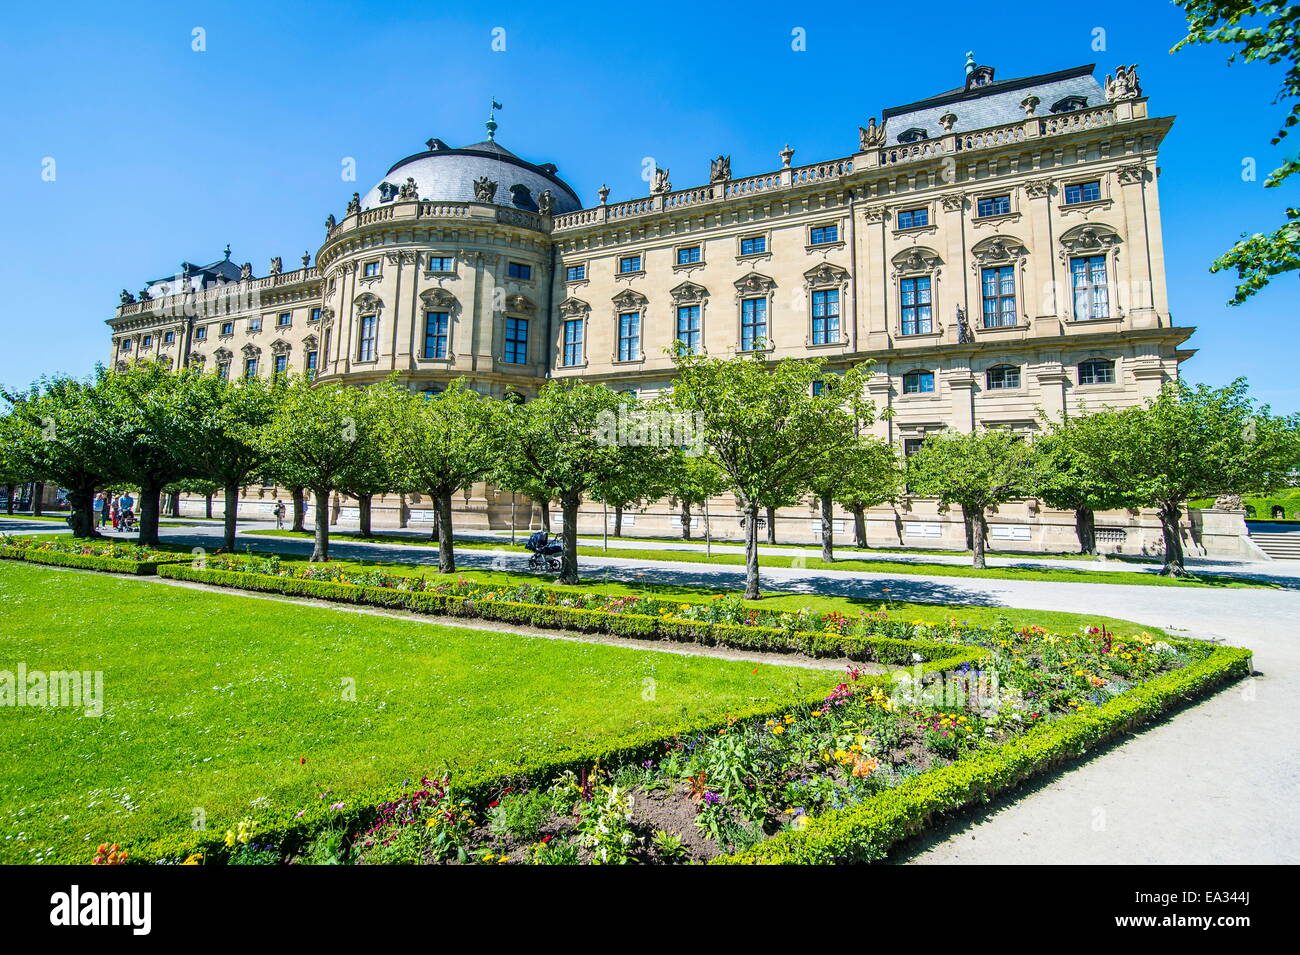 The Baroque gardens in the Wurzburg Residence, UNESCO World Heritage Site, Wurzburg, Franconia, Bavaria, Germany, - Stock Image